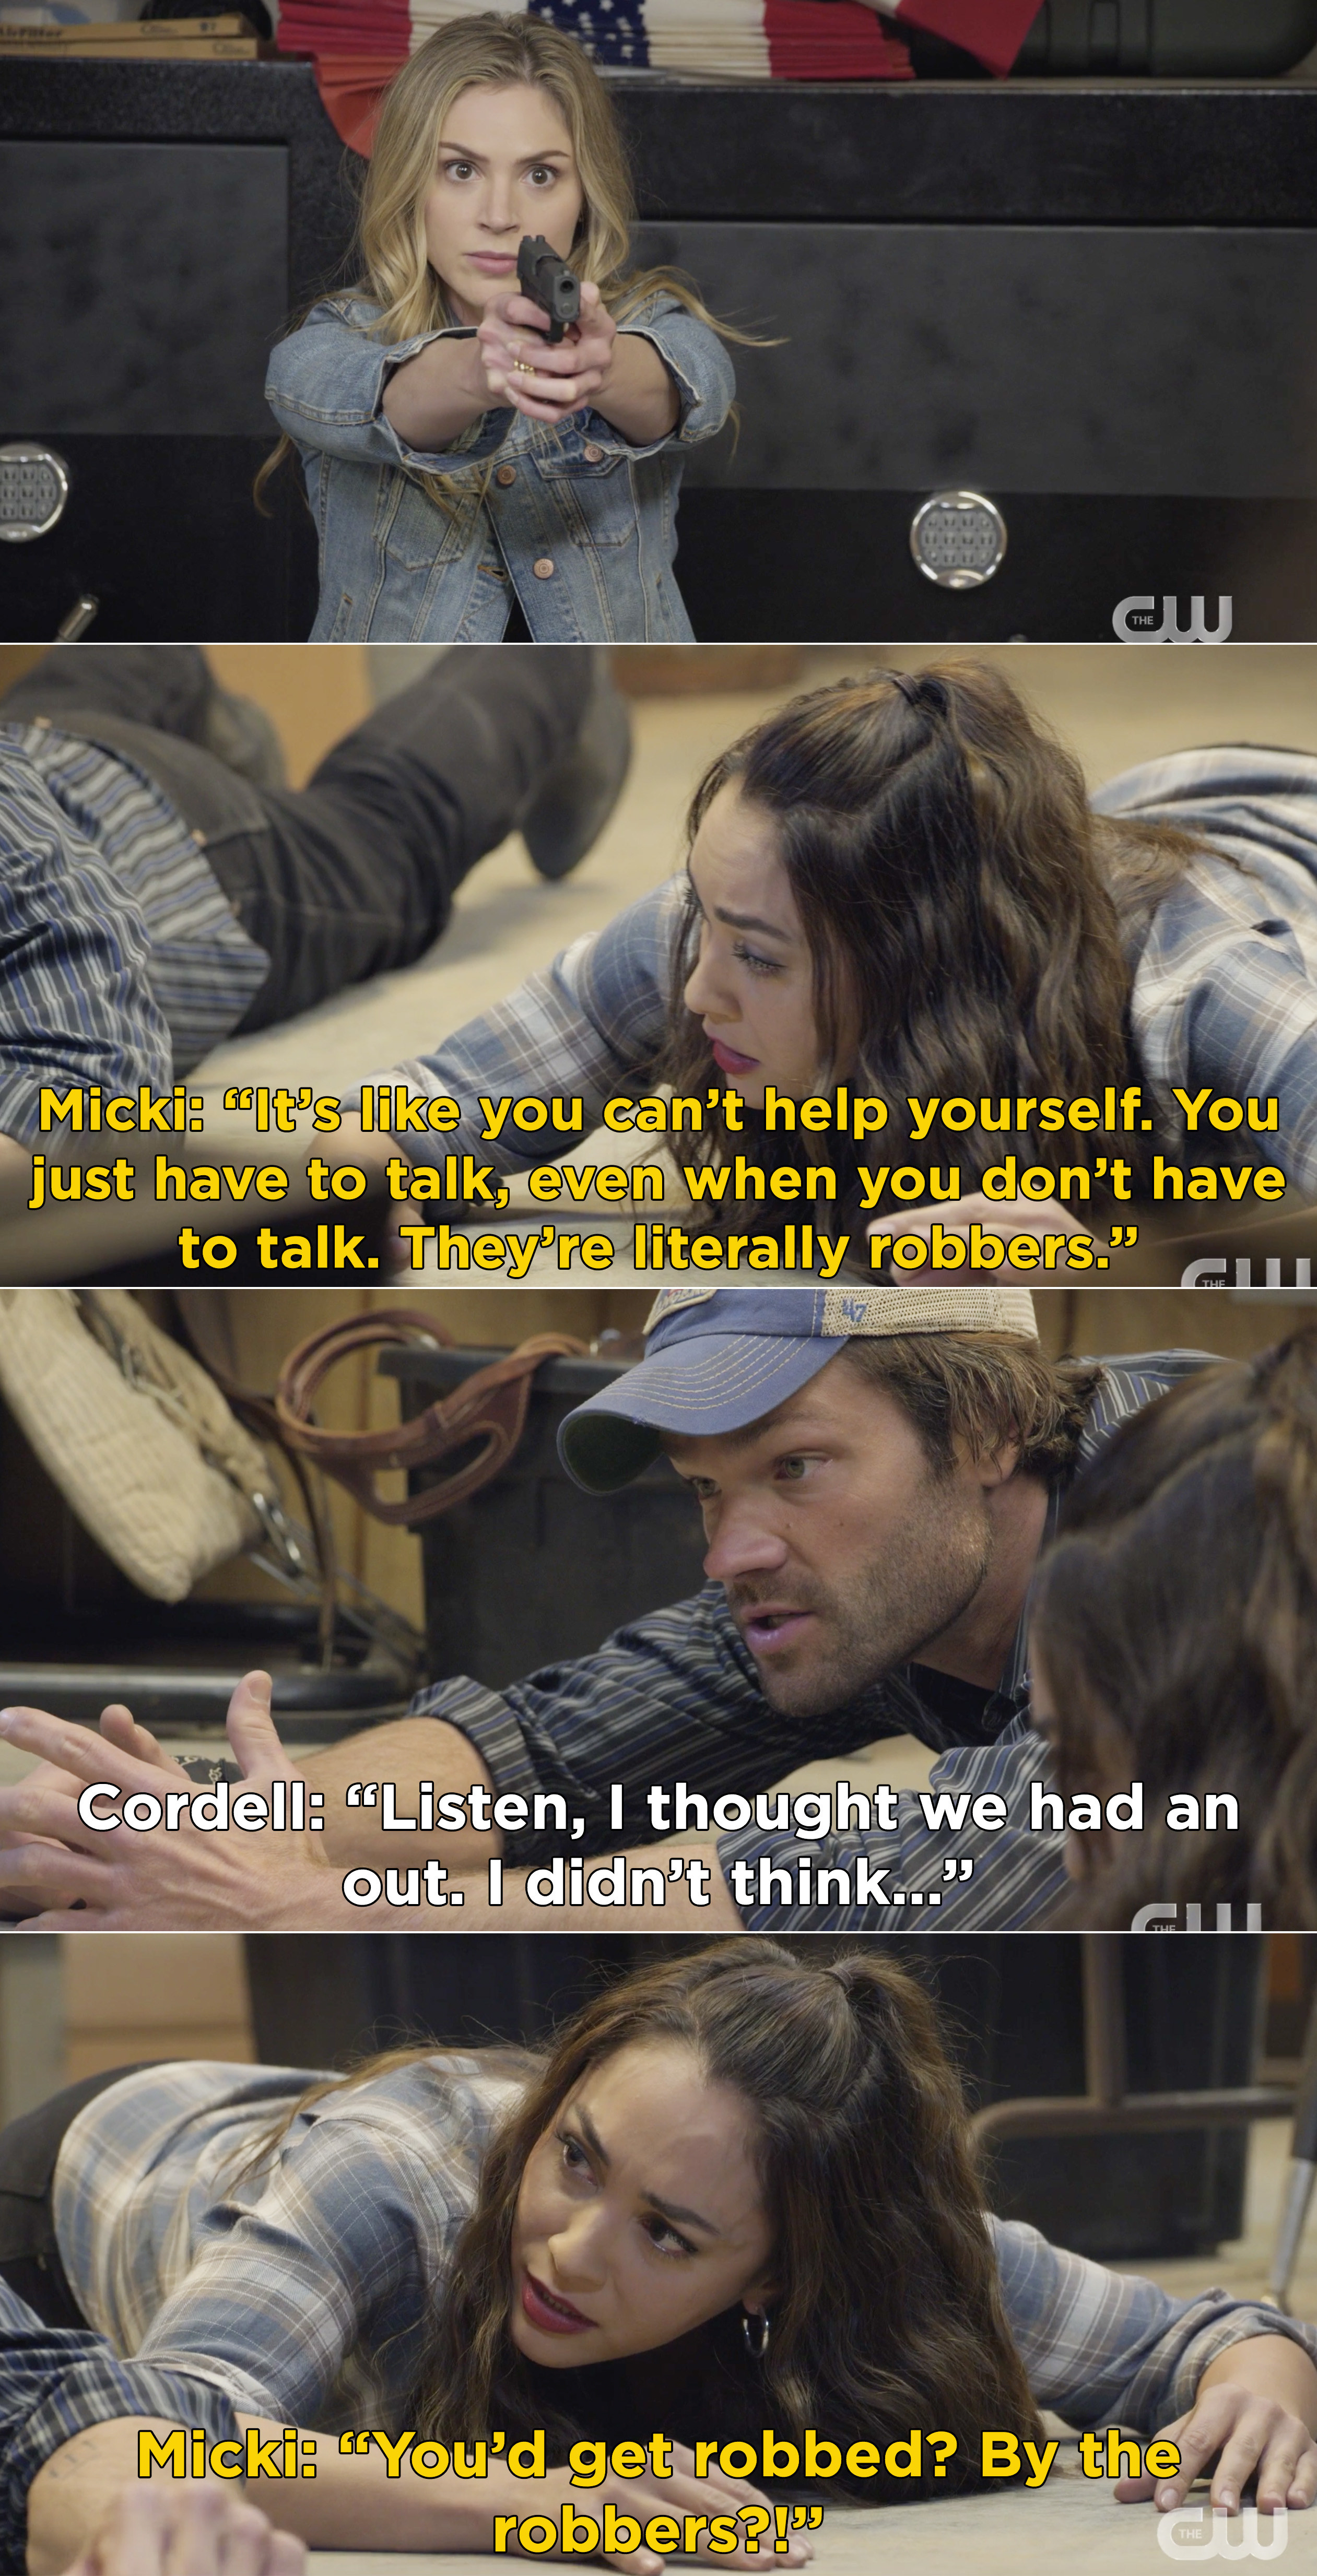 """Micki telling Cordell he just can't stop talking while they're lying face down on the ground, and Cordell saying he didn't think before Micki interrupts saying, """"You'd get robbed? By the robbers?!"""""""